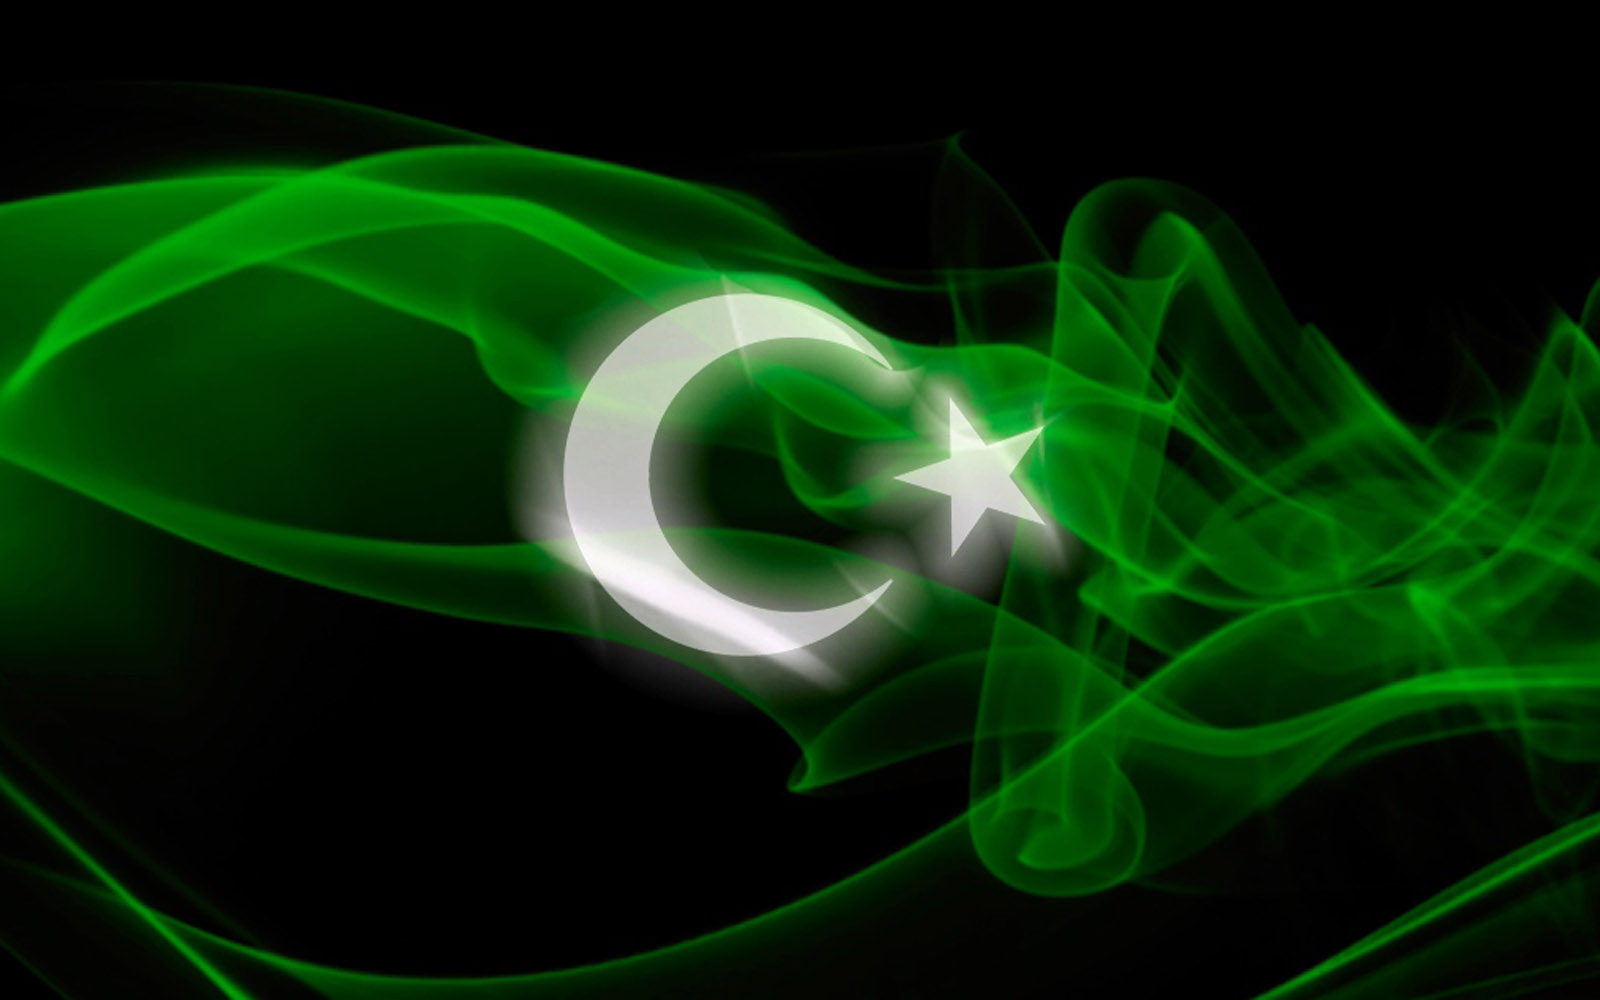 http://1.bp.blogspot.com/-LONFsnNXcT4/UECsN_oHogI/AAAAAAAAErA/uFKjSZkHGQ0/s1600/wallpapers-atoz.blog-Pakistan-Flag-Wallpapers-07.jpg